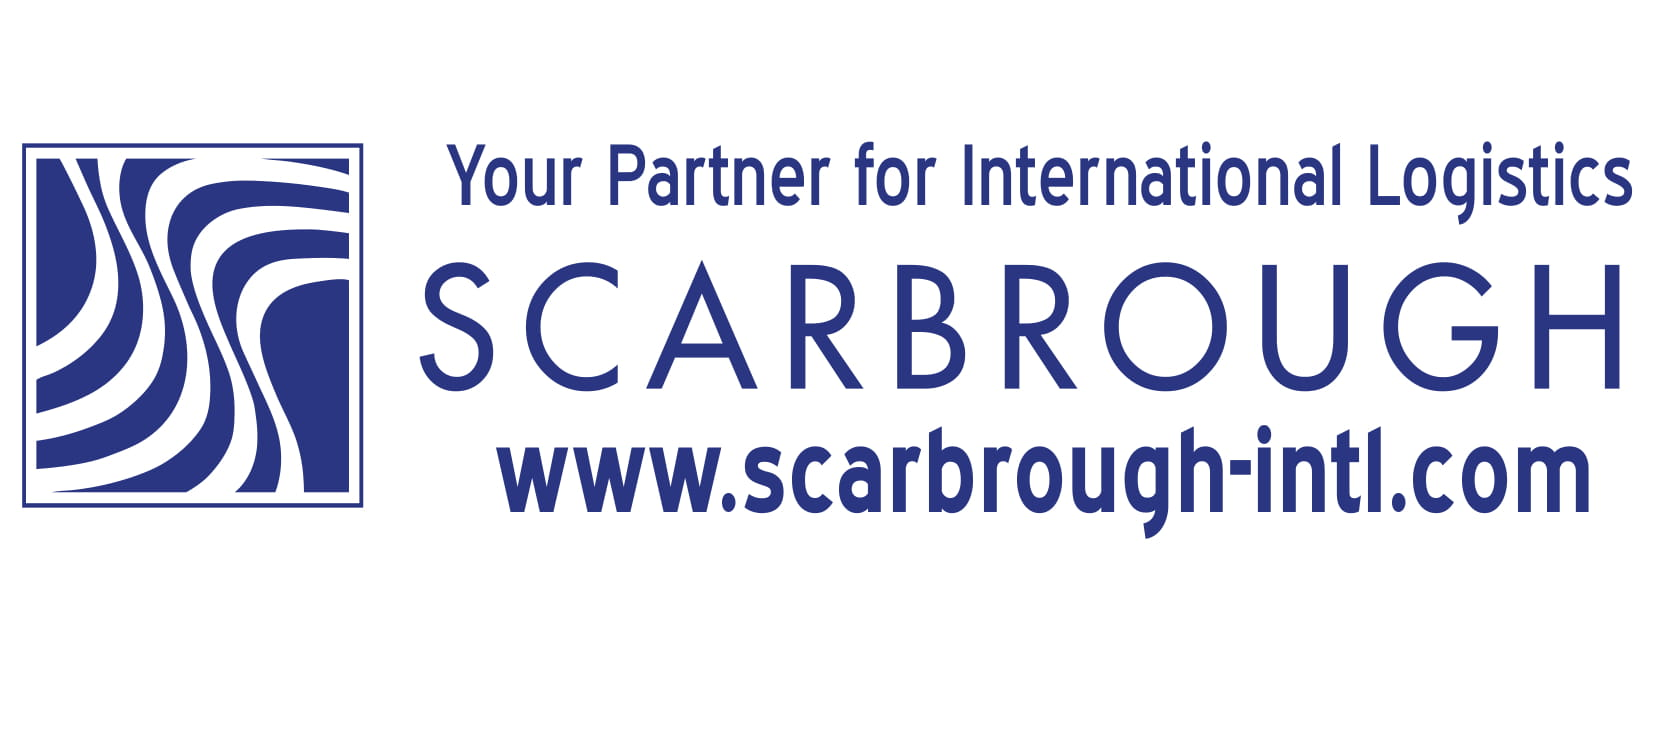 Copy of Scarbrough_logo_300dpi Your partner-1.jpg